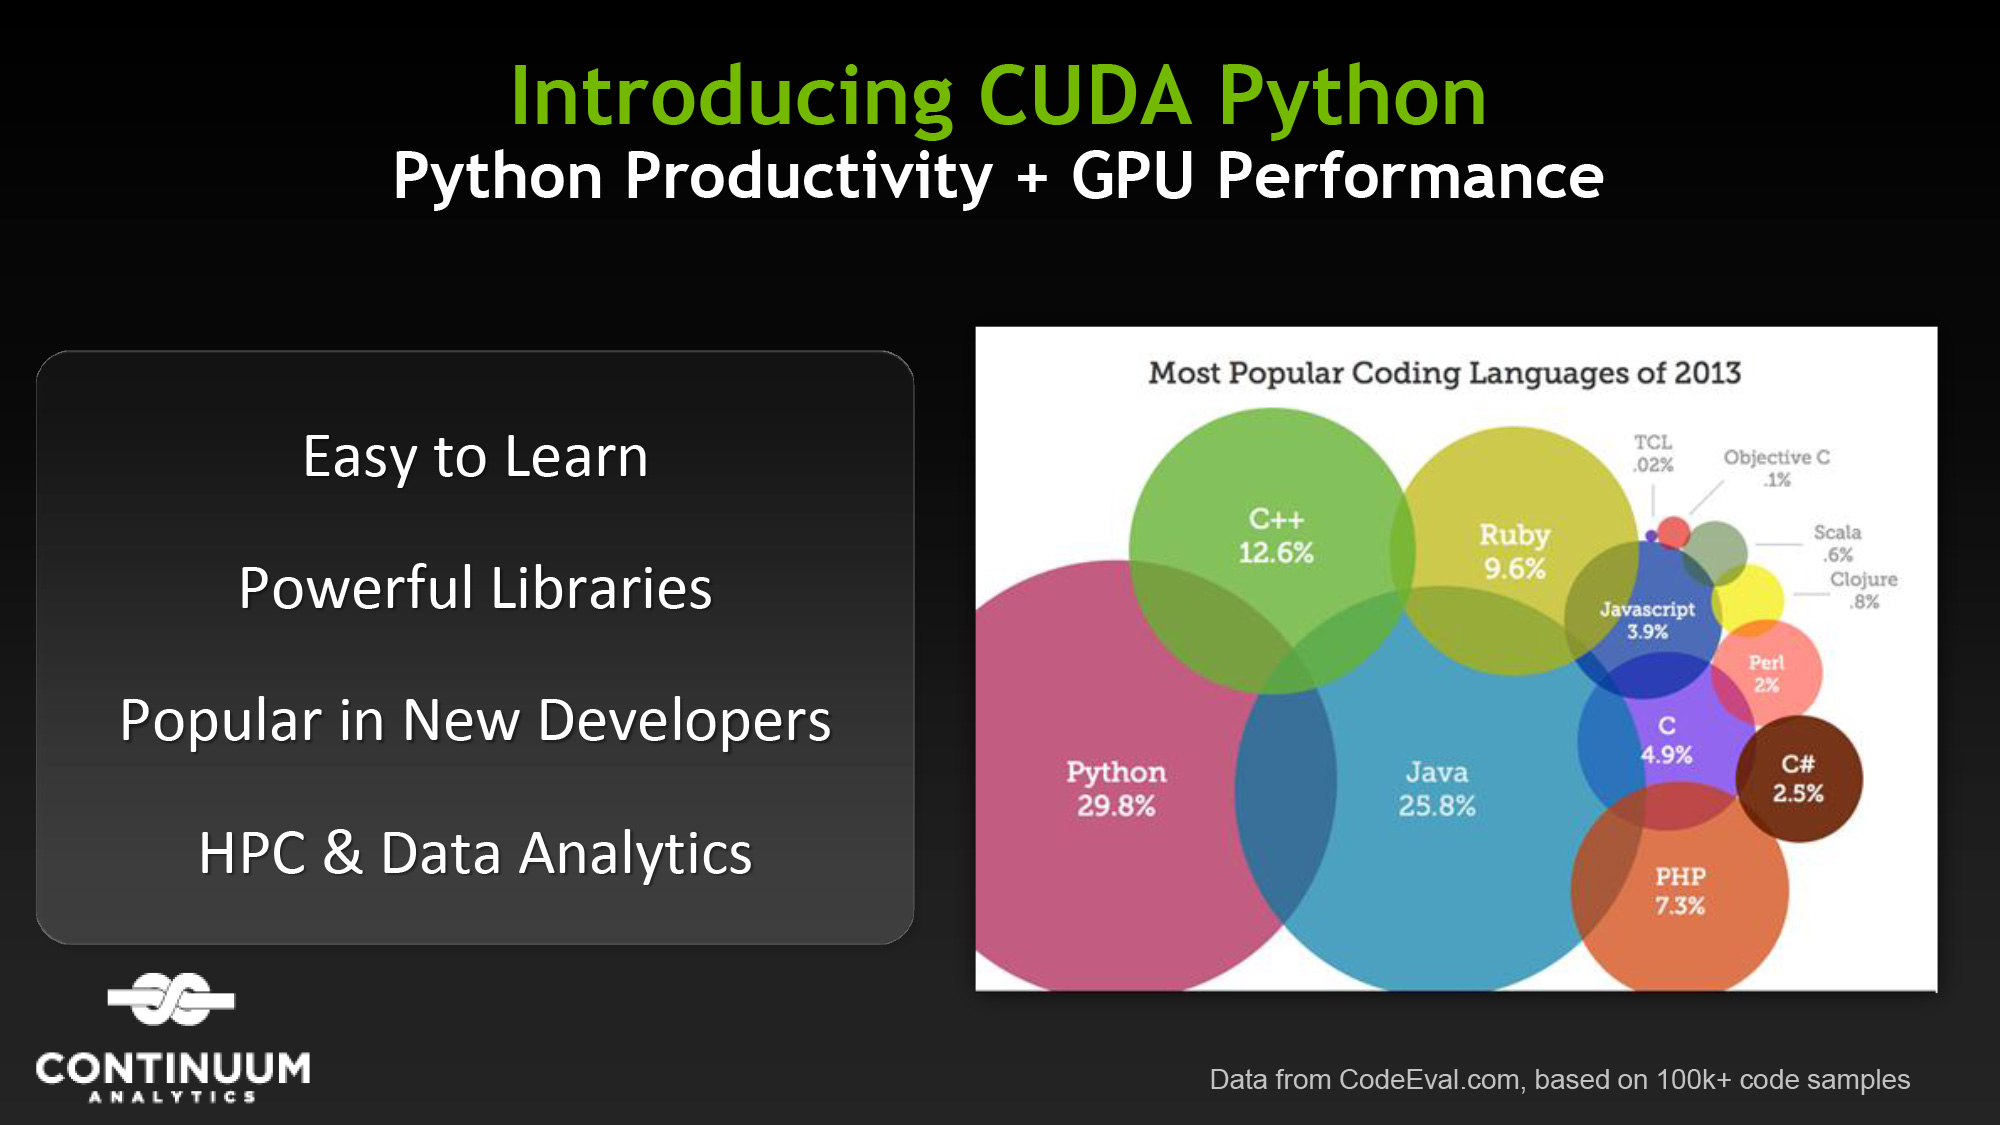 NVIDIA and Continuum Analytics Announce NumbaPro, A Python